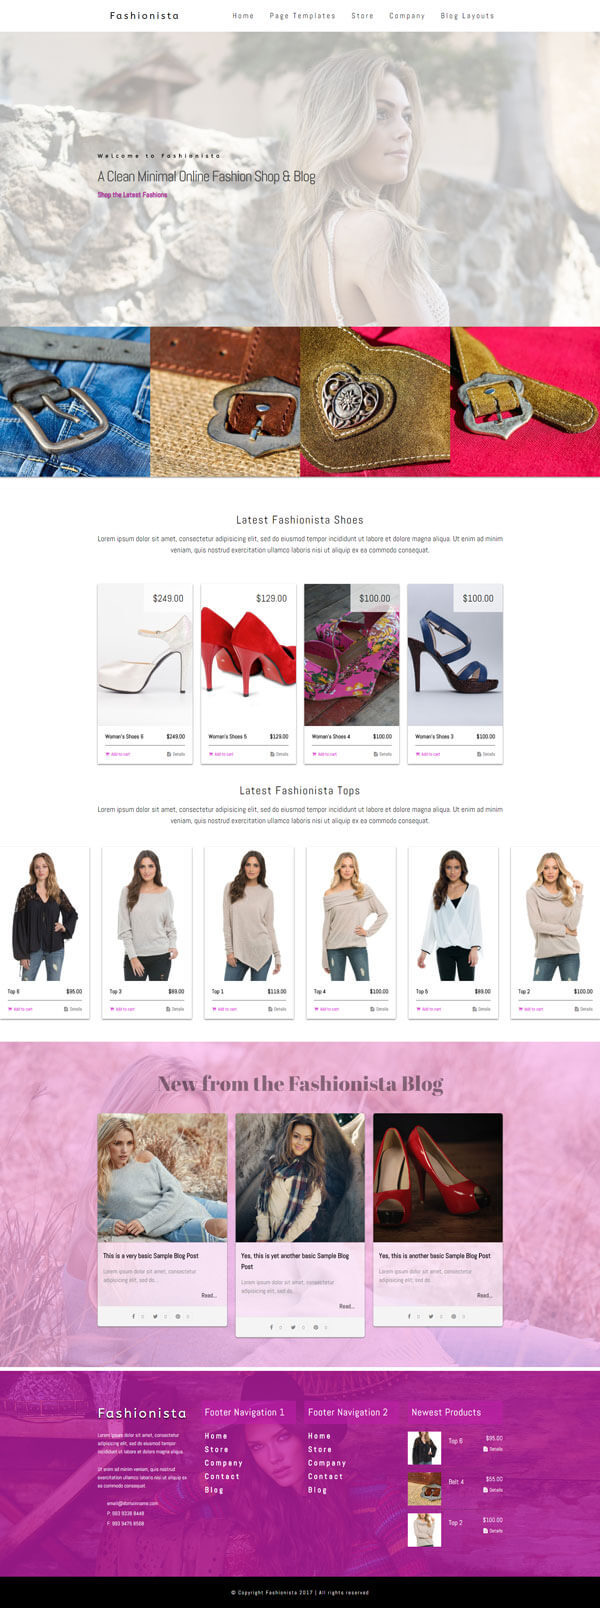 Fashionista - Fashion WordPress Theme | Website Template - Home Page Layout 02 - Nova Marketing Intelligence